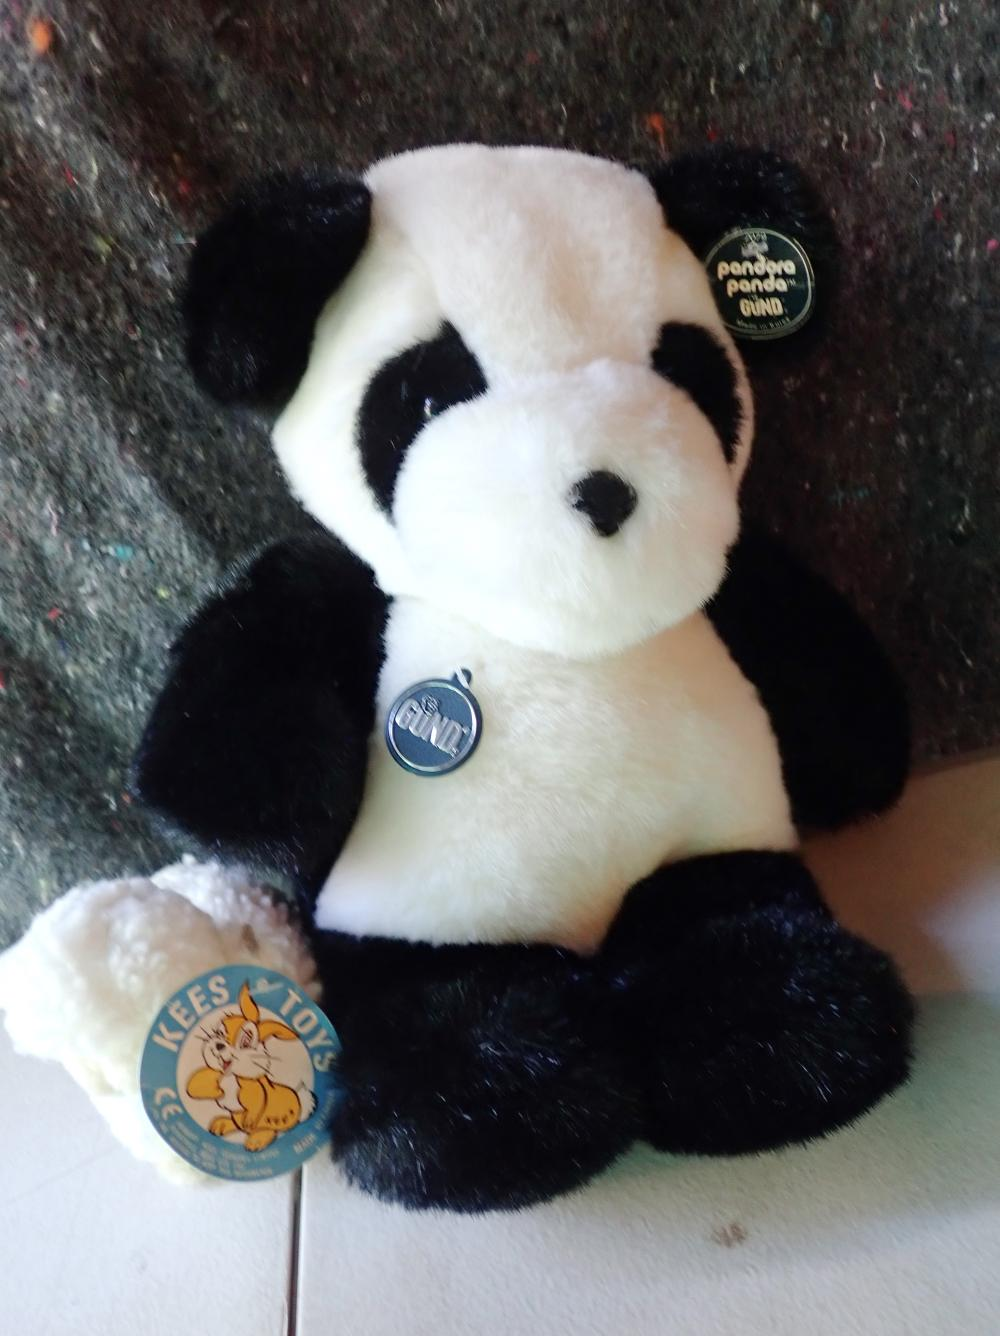 """REPRODUCTION DOLLS PRAM VIC STYLE 29"""" LONG 31"""" HIGH CANE BASKET WITH MATERIAL TOP METAL BASE WITH (1) 14"""" PANDORA PANDA BY GUND COLLECTORS CLASSIC LTD EDT MADE IN KOREA (2) CE KEES TOY 4"""" SHEEP (3) JACK IN BOX 10"""""""